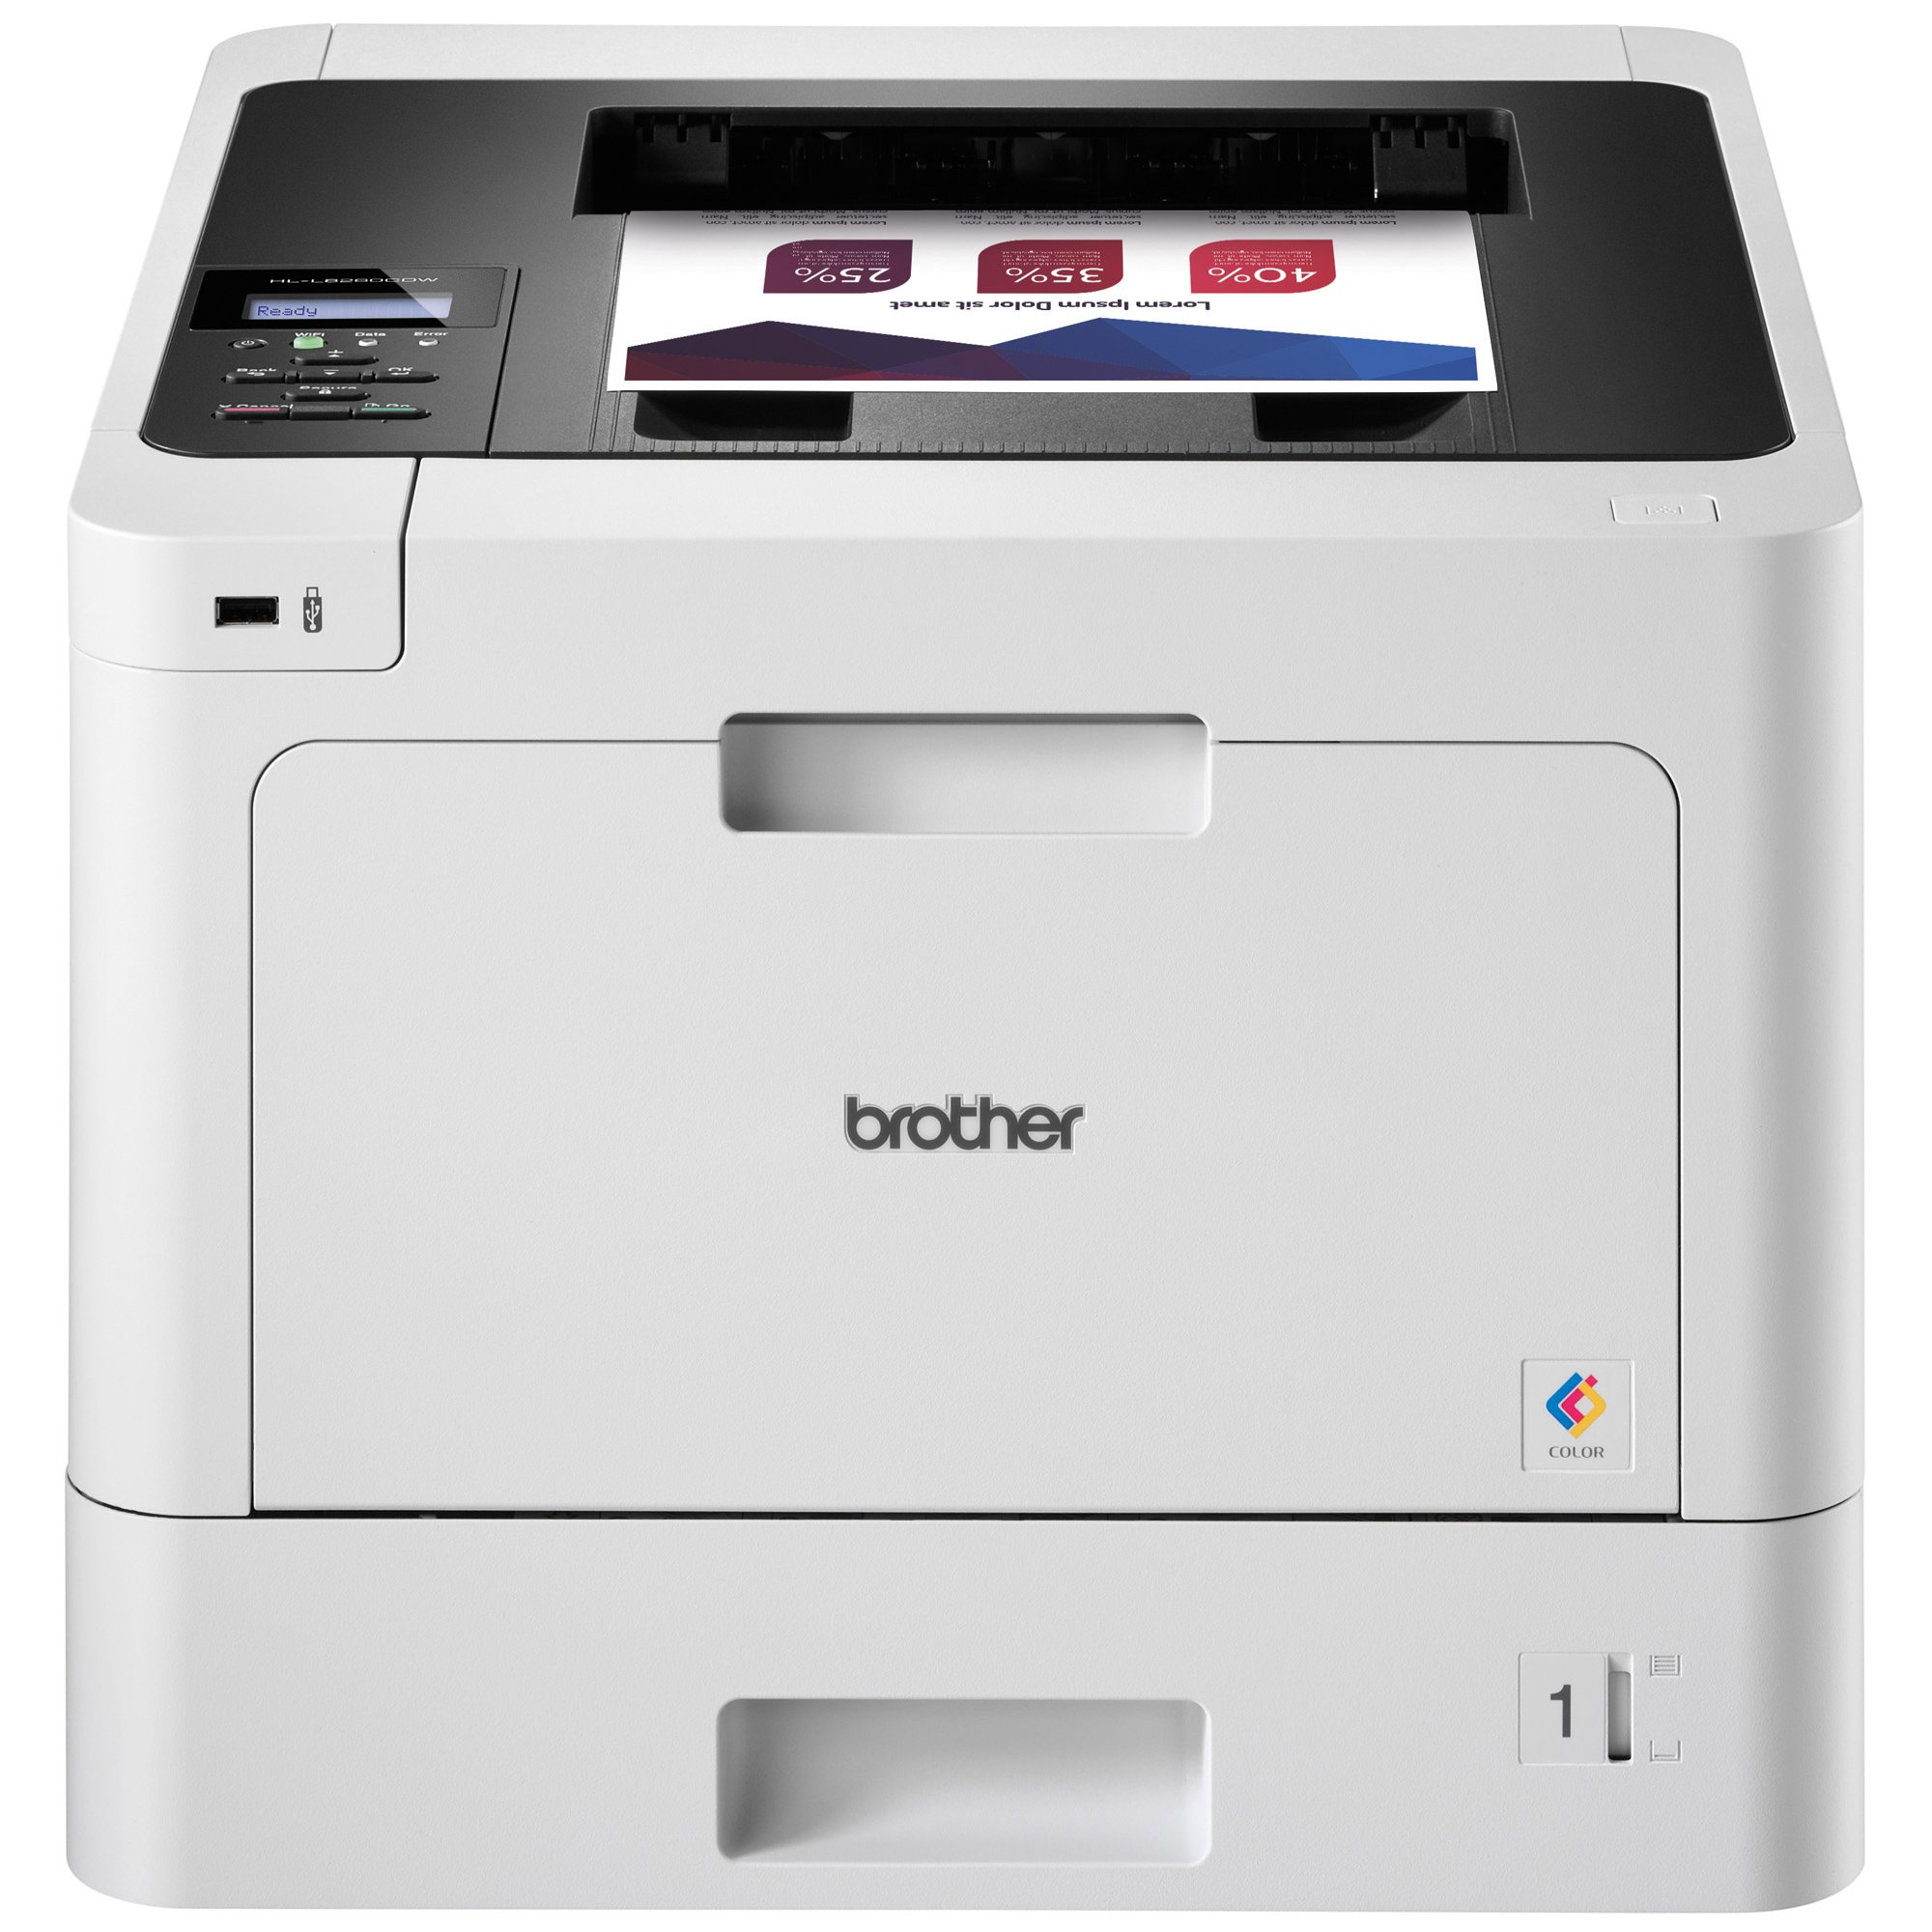 Brother Printer HLL8260CDW Business Color Laser Printer with Duplex Printing and Wireless Networking, Amazon Dash Replenishment Enabled by Brother